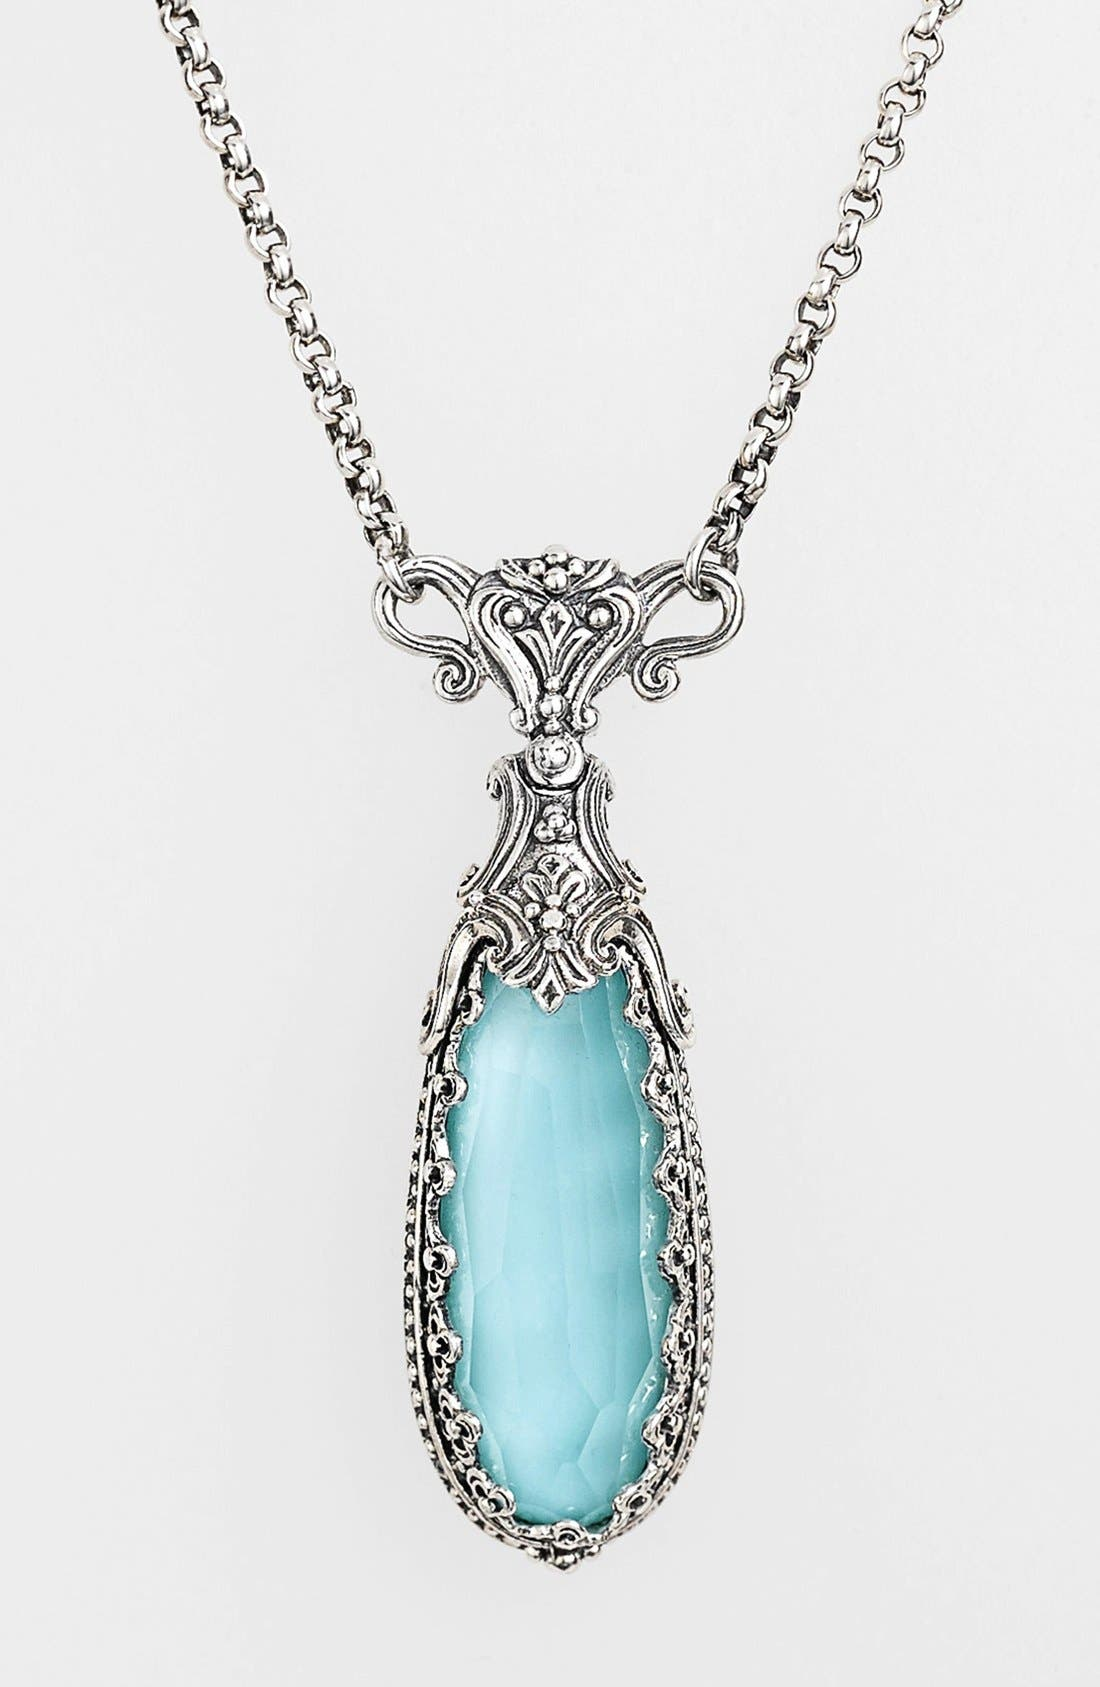 Alternate Image 1 Selected - Konstantino 'Aegean' Teardrop Pendant Necklace